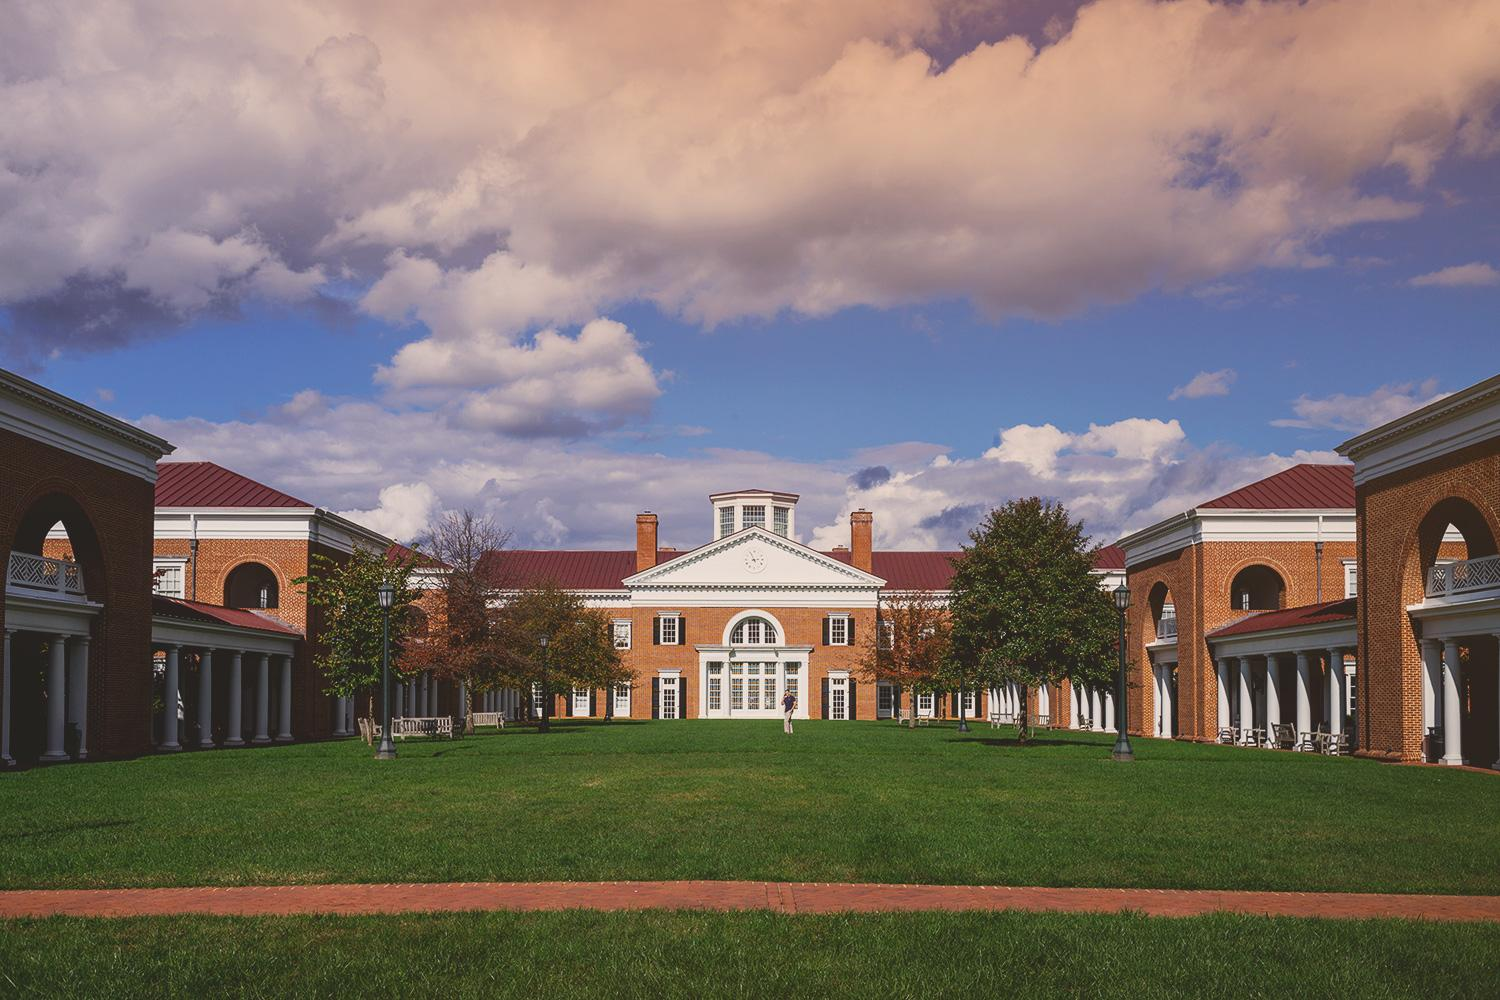 UVA's Darden School of Business offers the best educational experience among the world's MBA programs, according to The Economist's annual rankings.